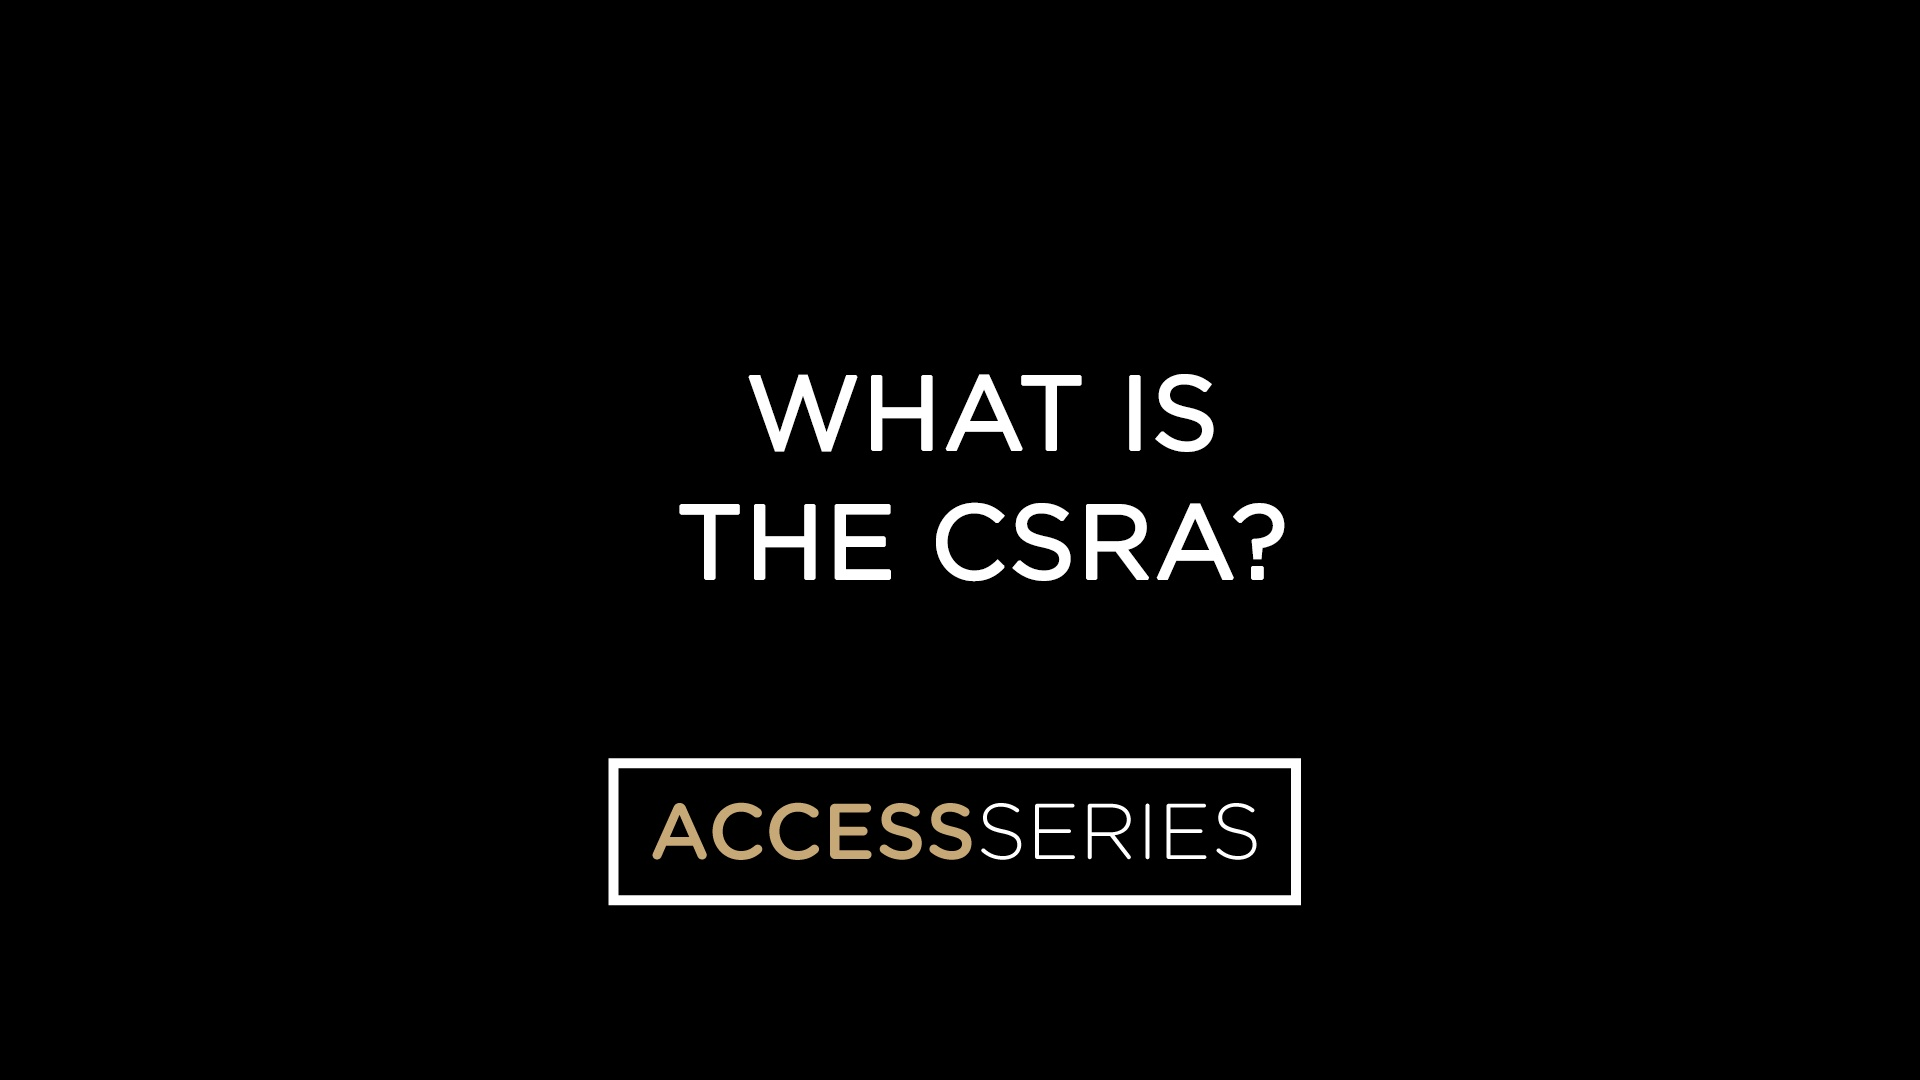 What is the CSRA?